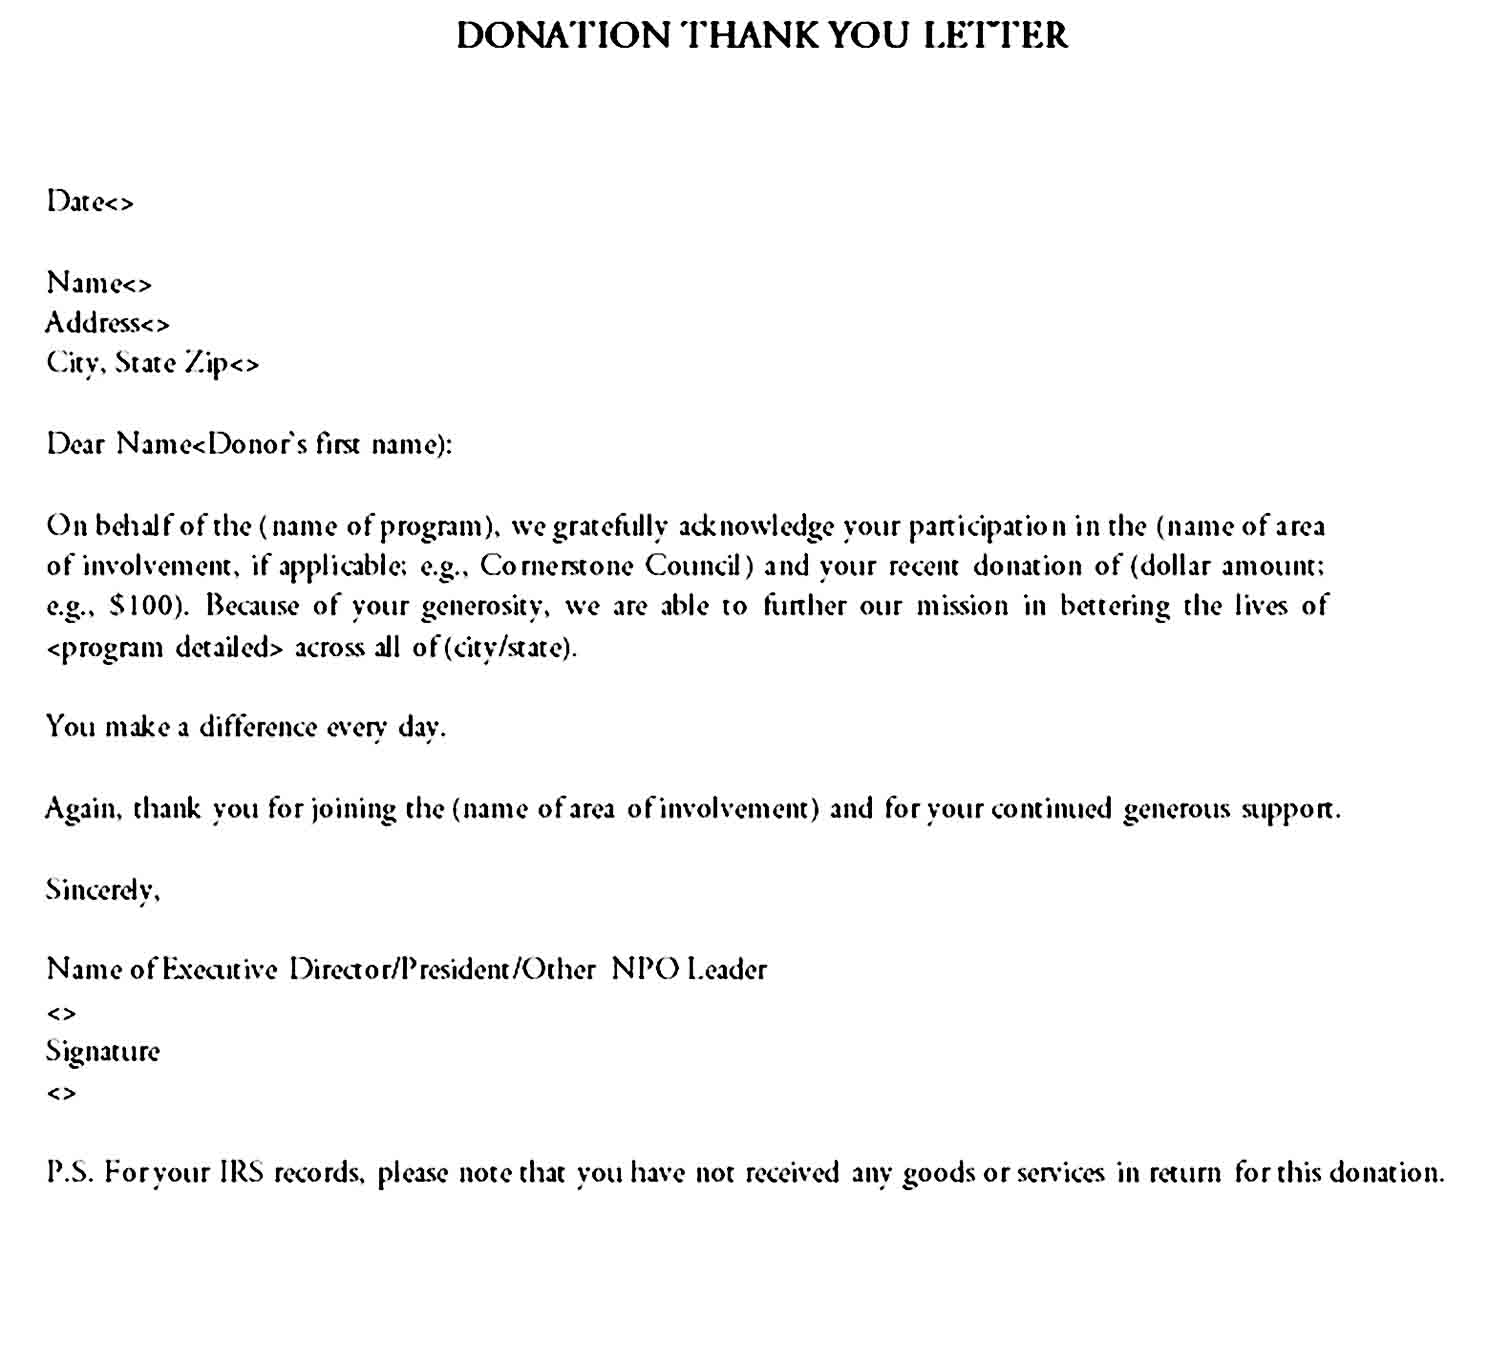 Thank you letter 14